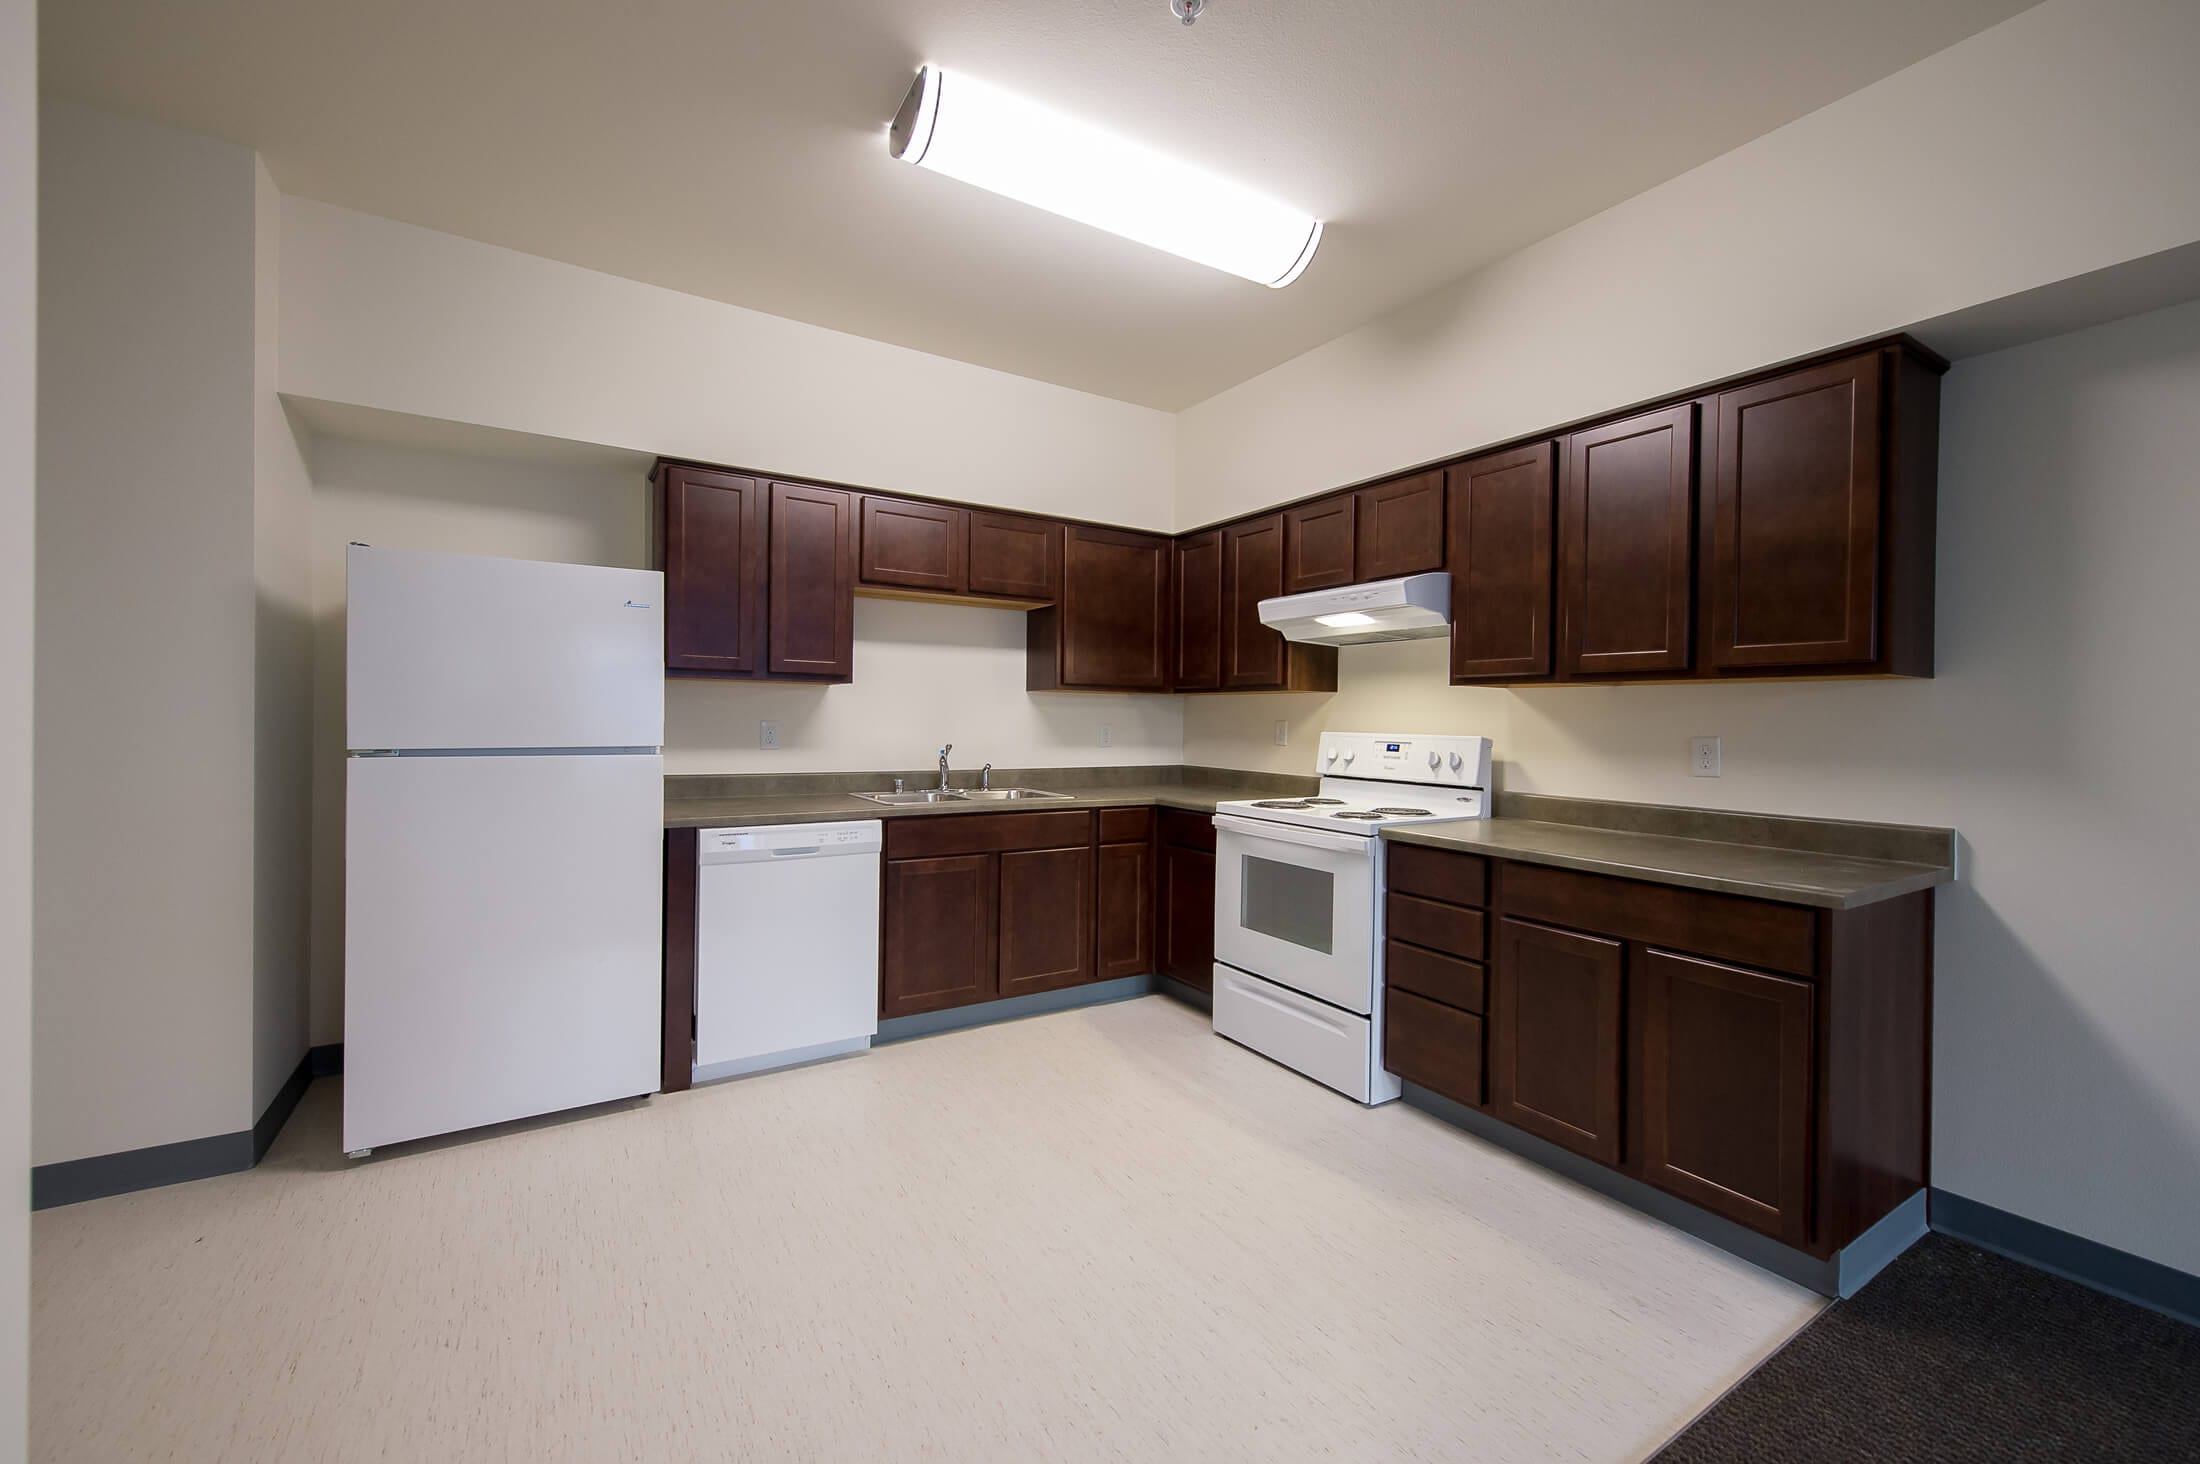 Expand Bakerview Kitchen Interior